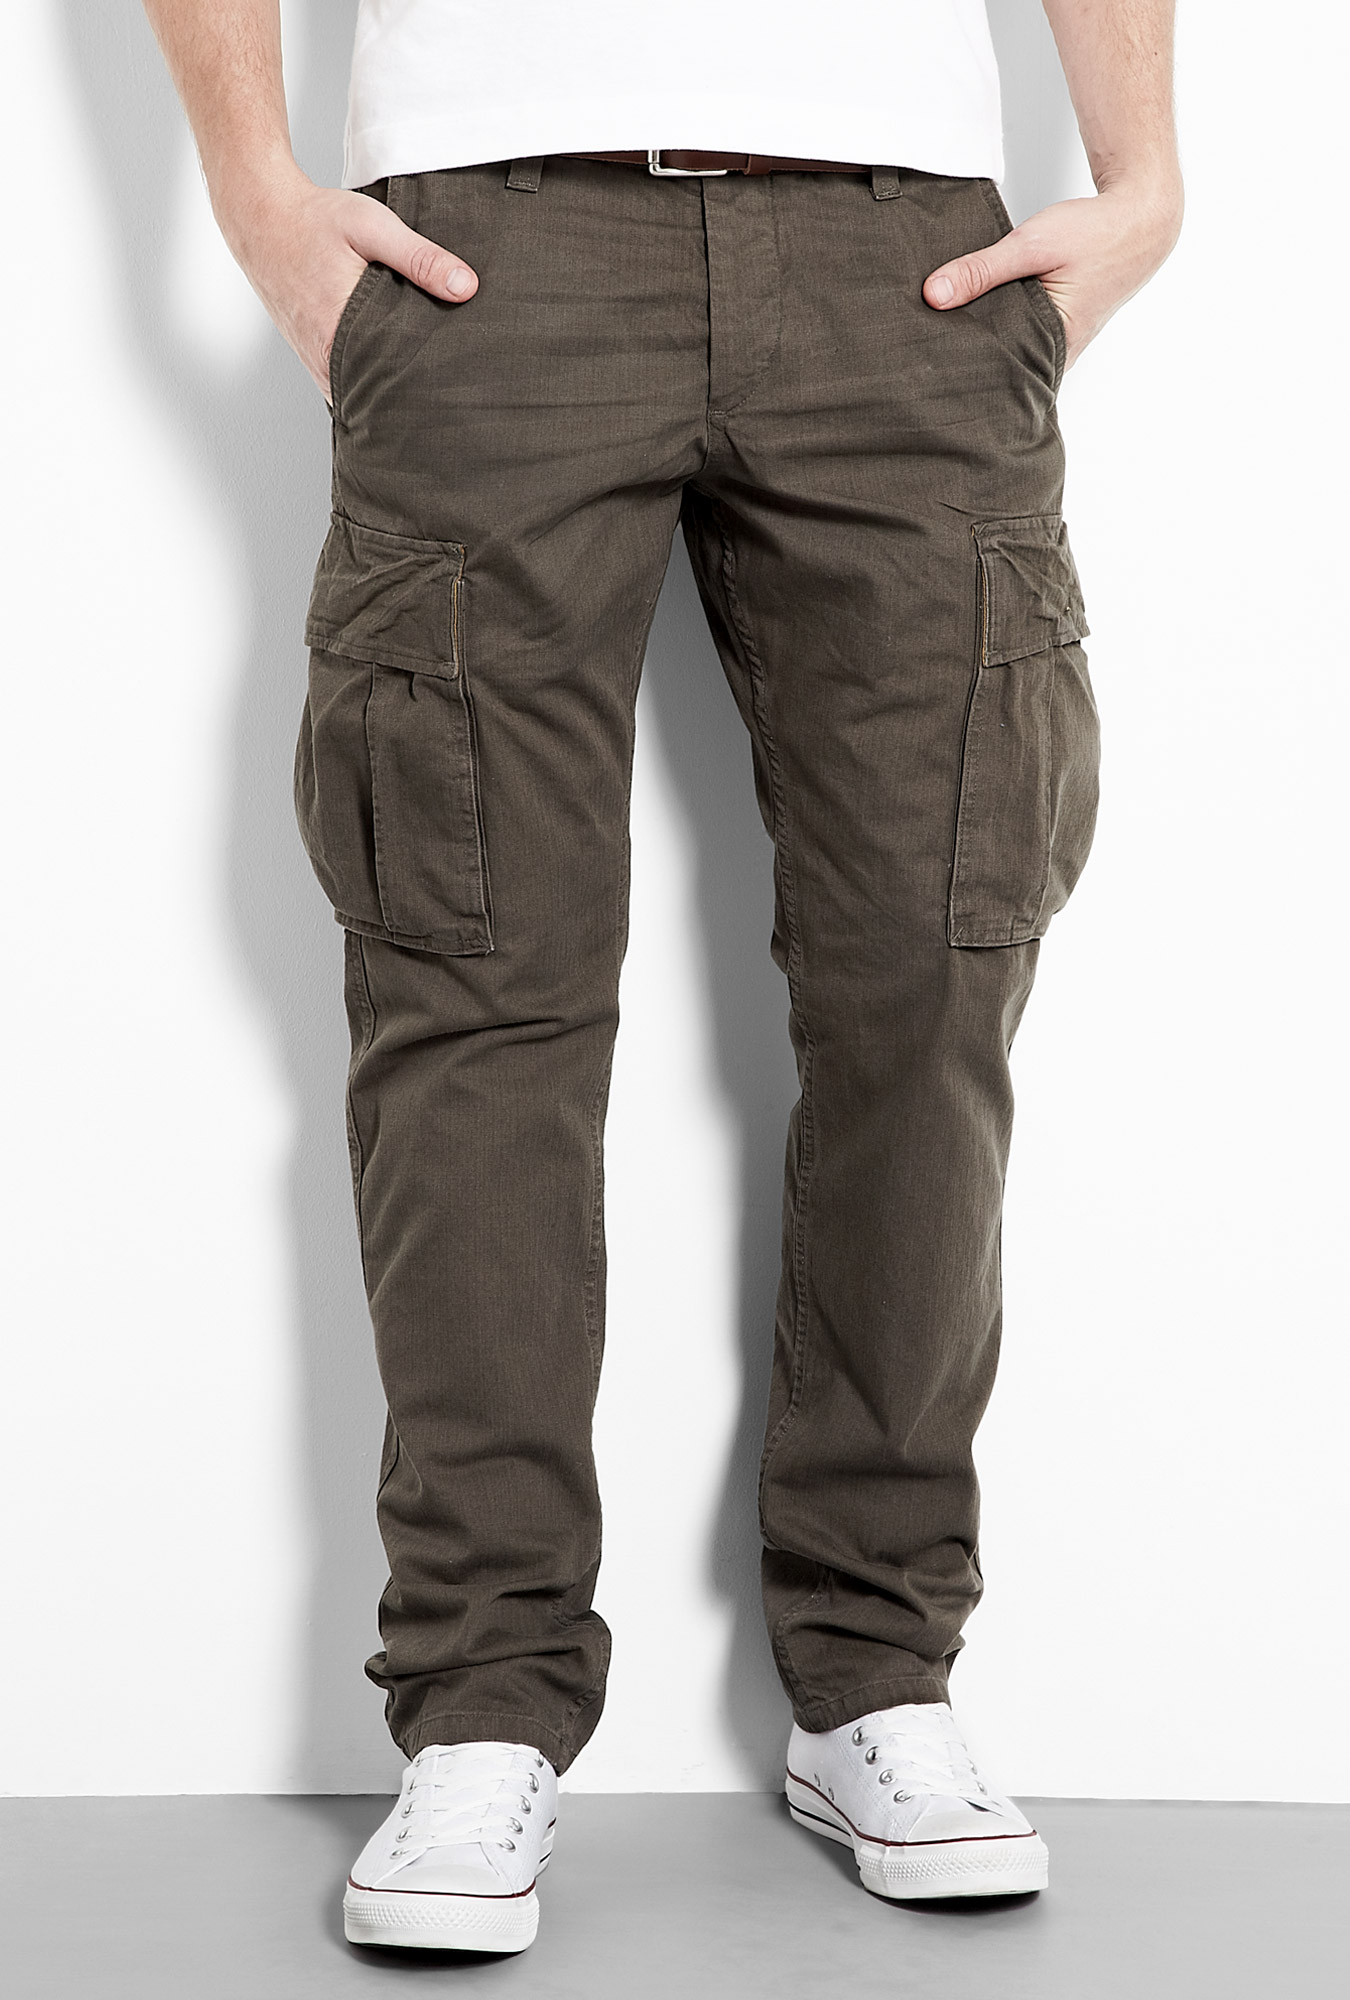 Cargo Pants for Men Outfits for the Bold - Carey Fashion